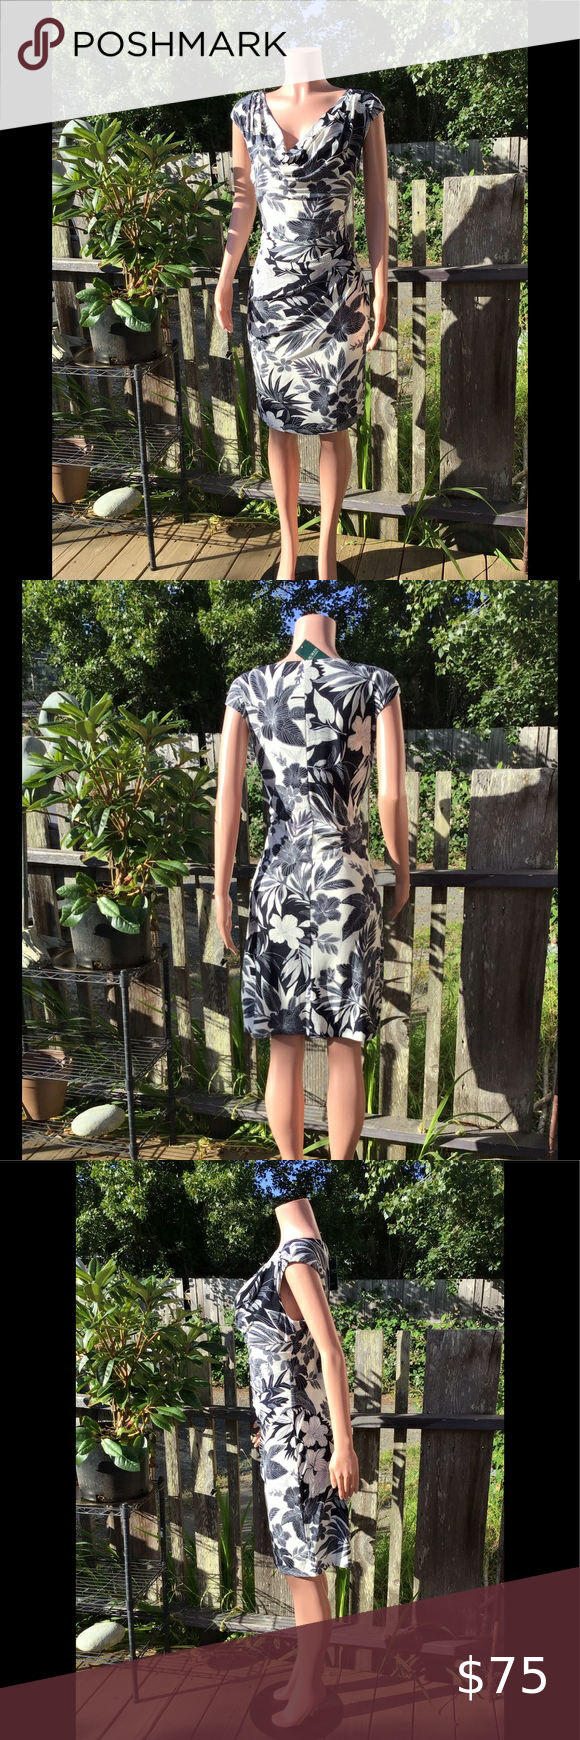 Nwt S Ralph Lauren Dress Fit And Flare Dress Ralph Lauren Dress Summer Dresses [ 1740 x 580 Pixel ]